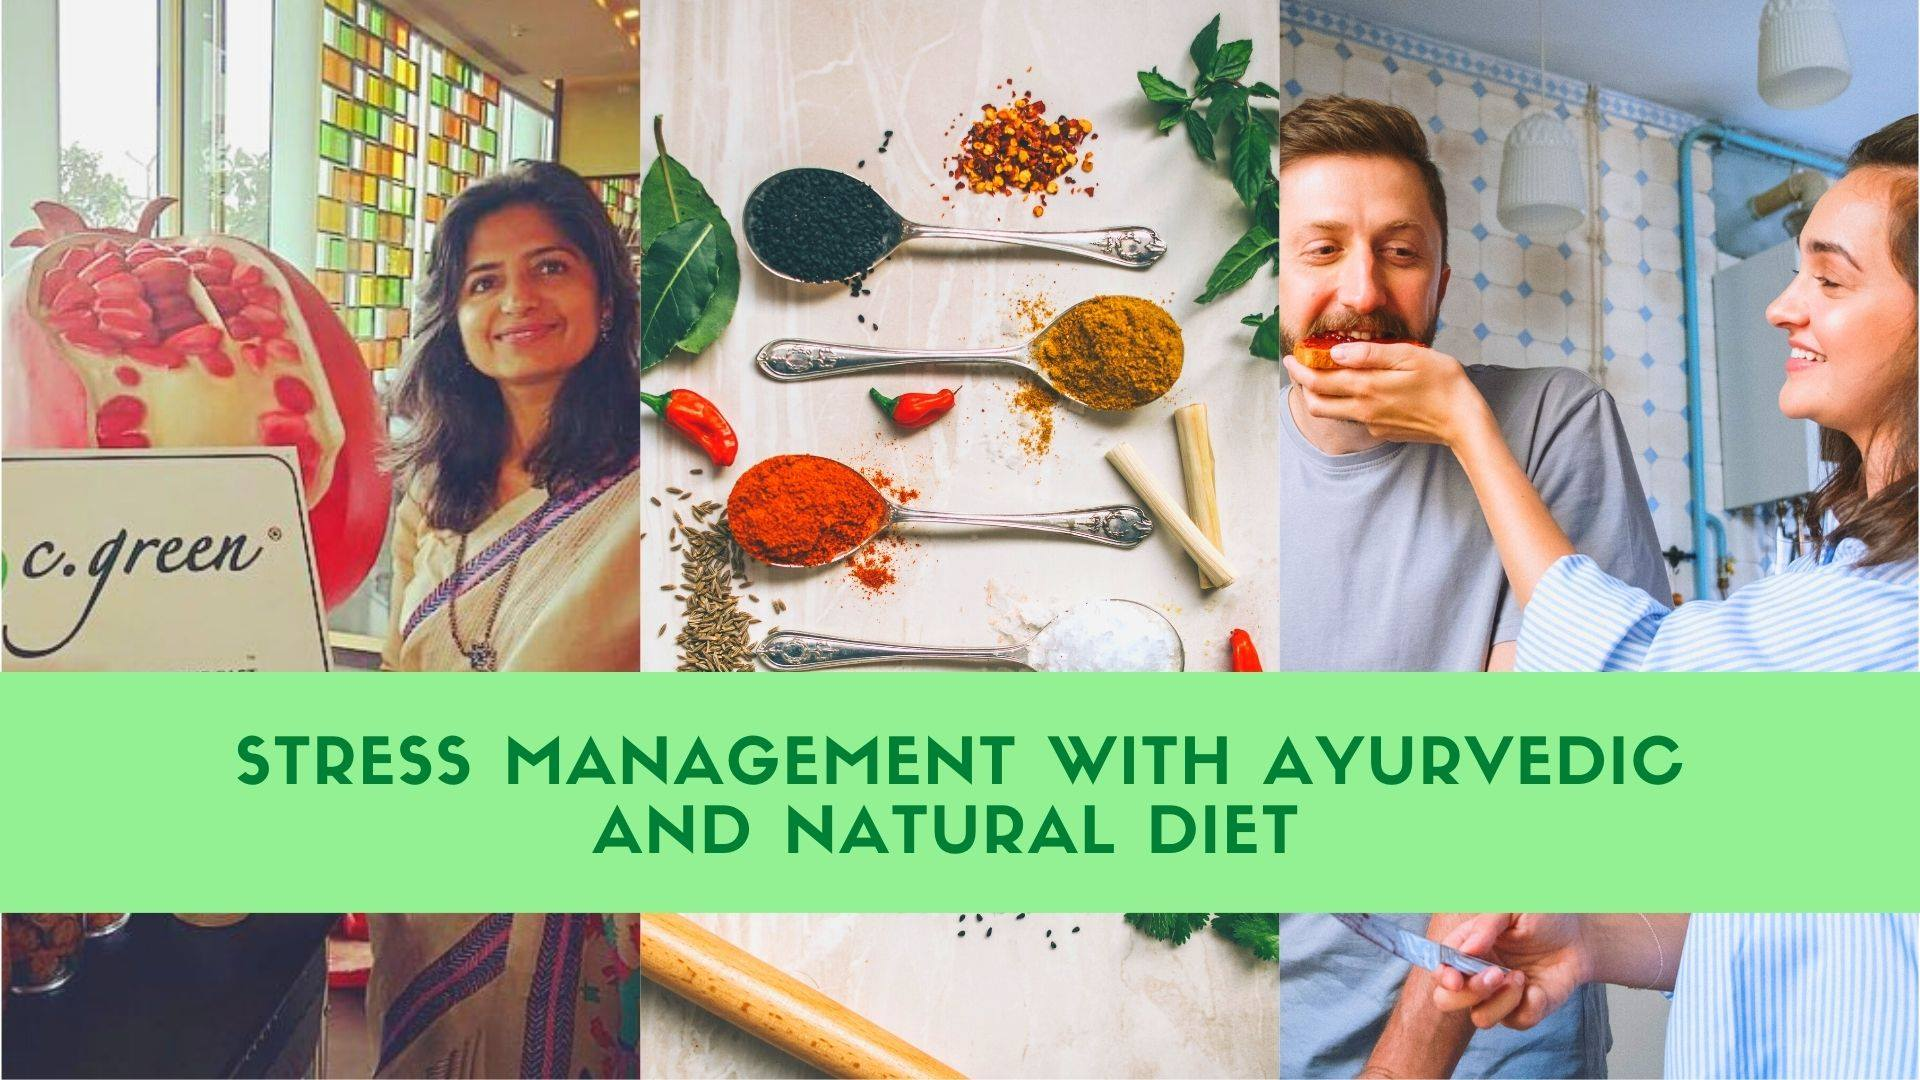 Stress Management With Ayurvedic And Natural Diet